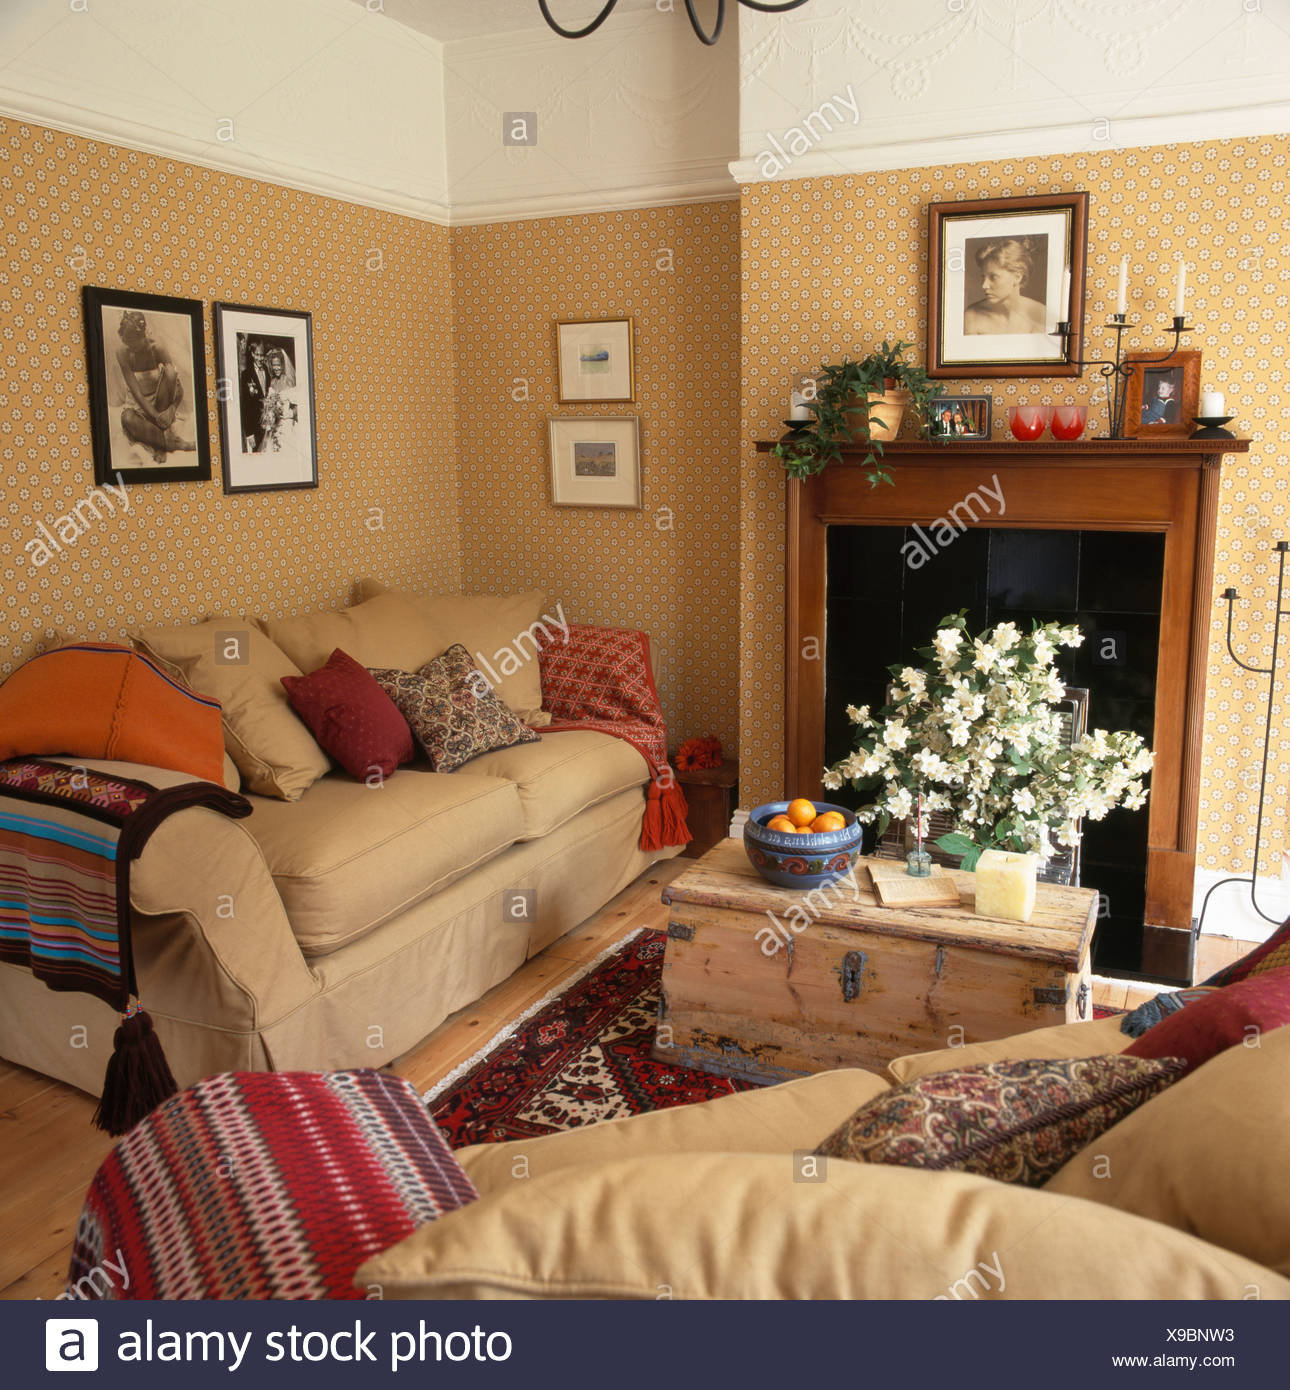 Pine chest in front of fireplace in livingroom with cream sofas and white cornice above patterned beige wallpaper